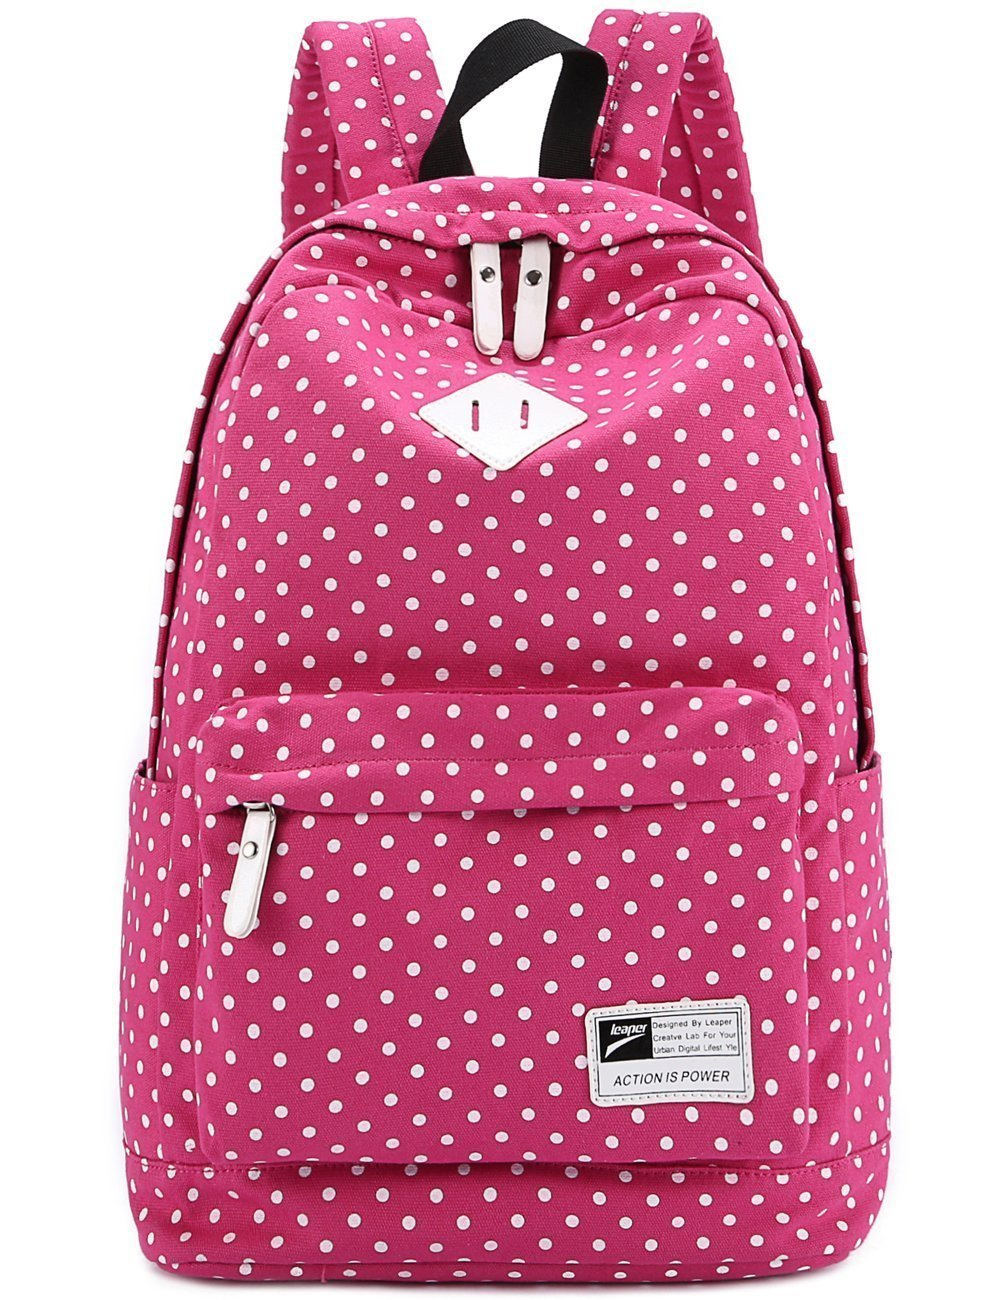 Amazon.com : Yanzi6 Lightweight Casual Daypack Backpack for College Bookbag for Women Girls School Bags (Pink) : Sports & Outdoors